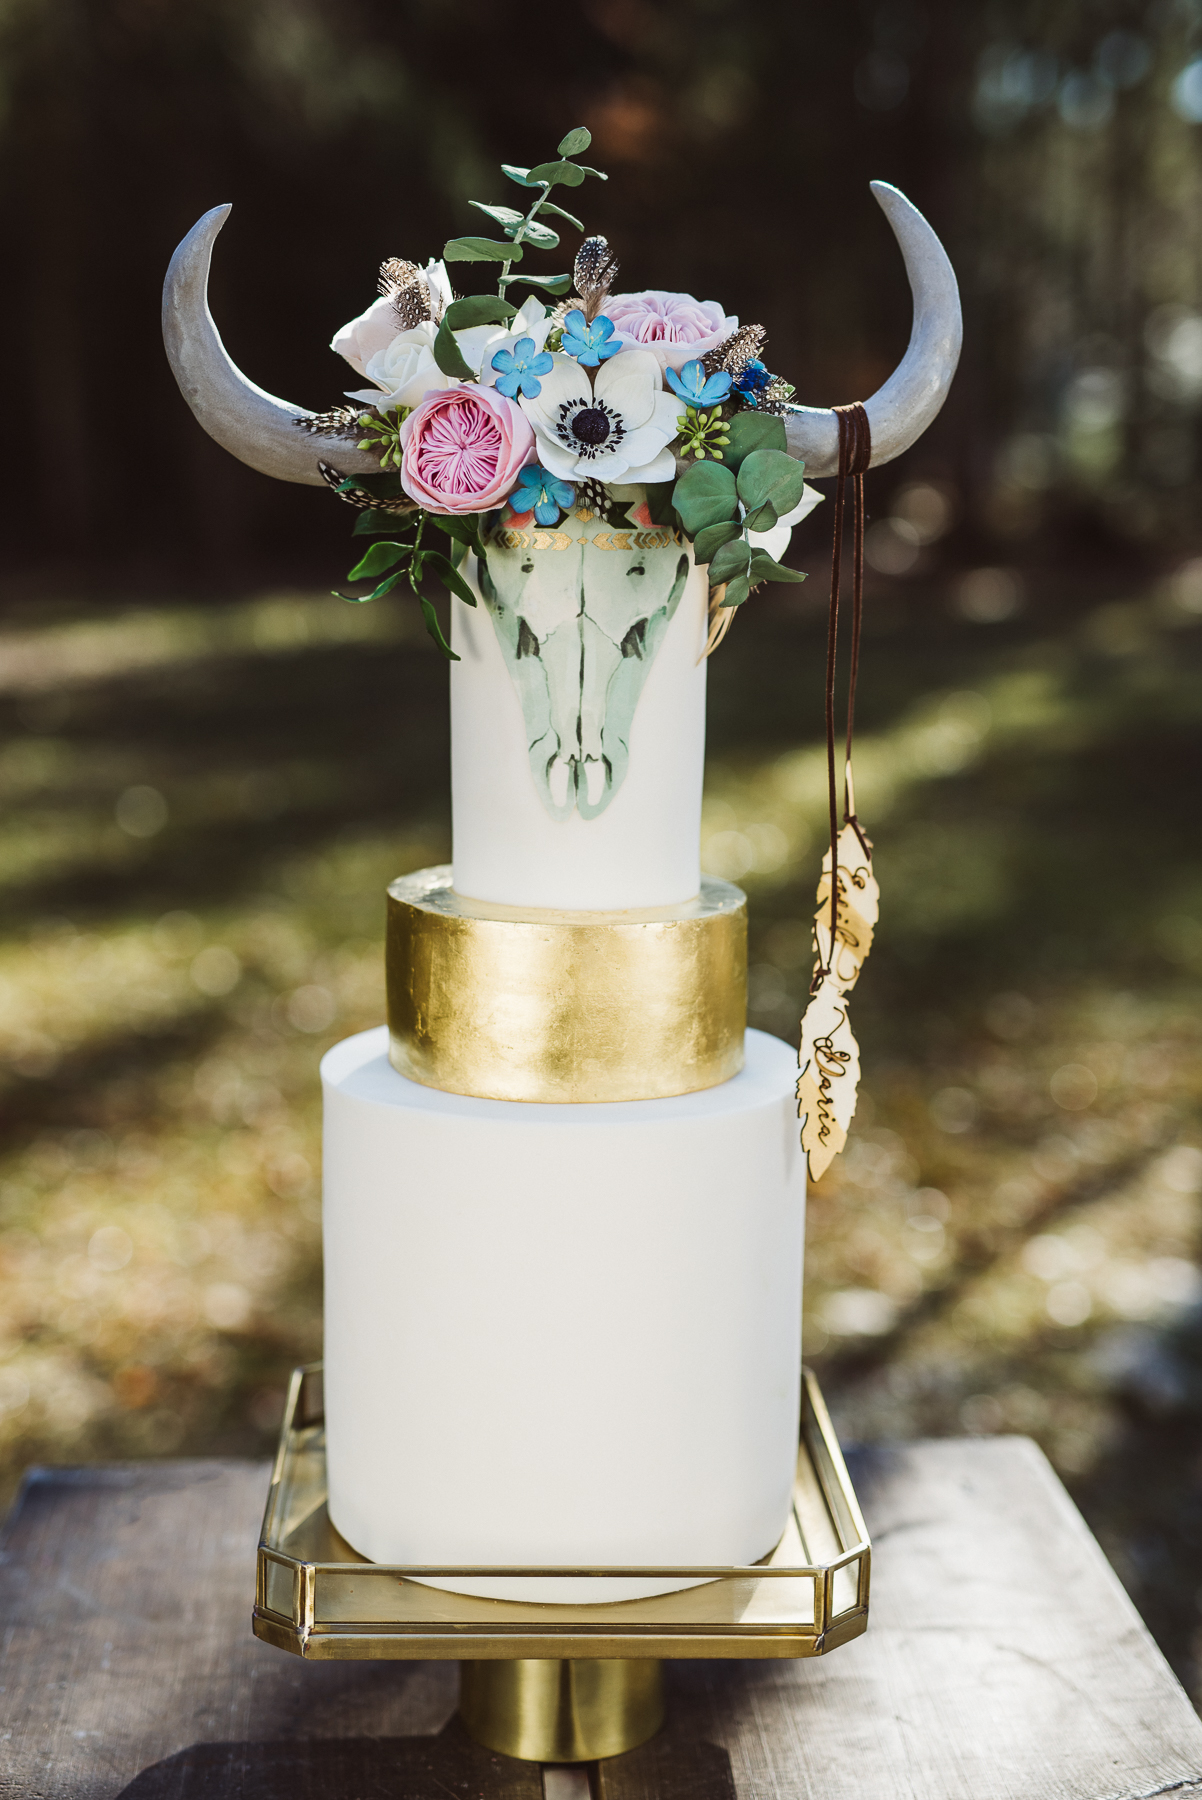 White and gold boho chic wedding cake